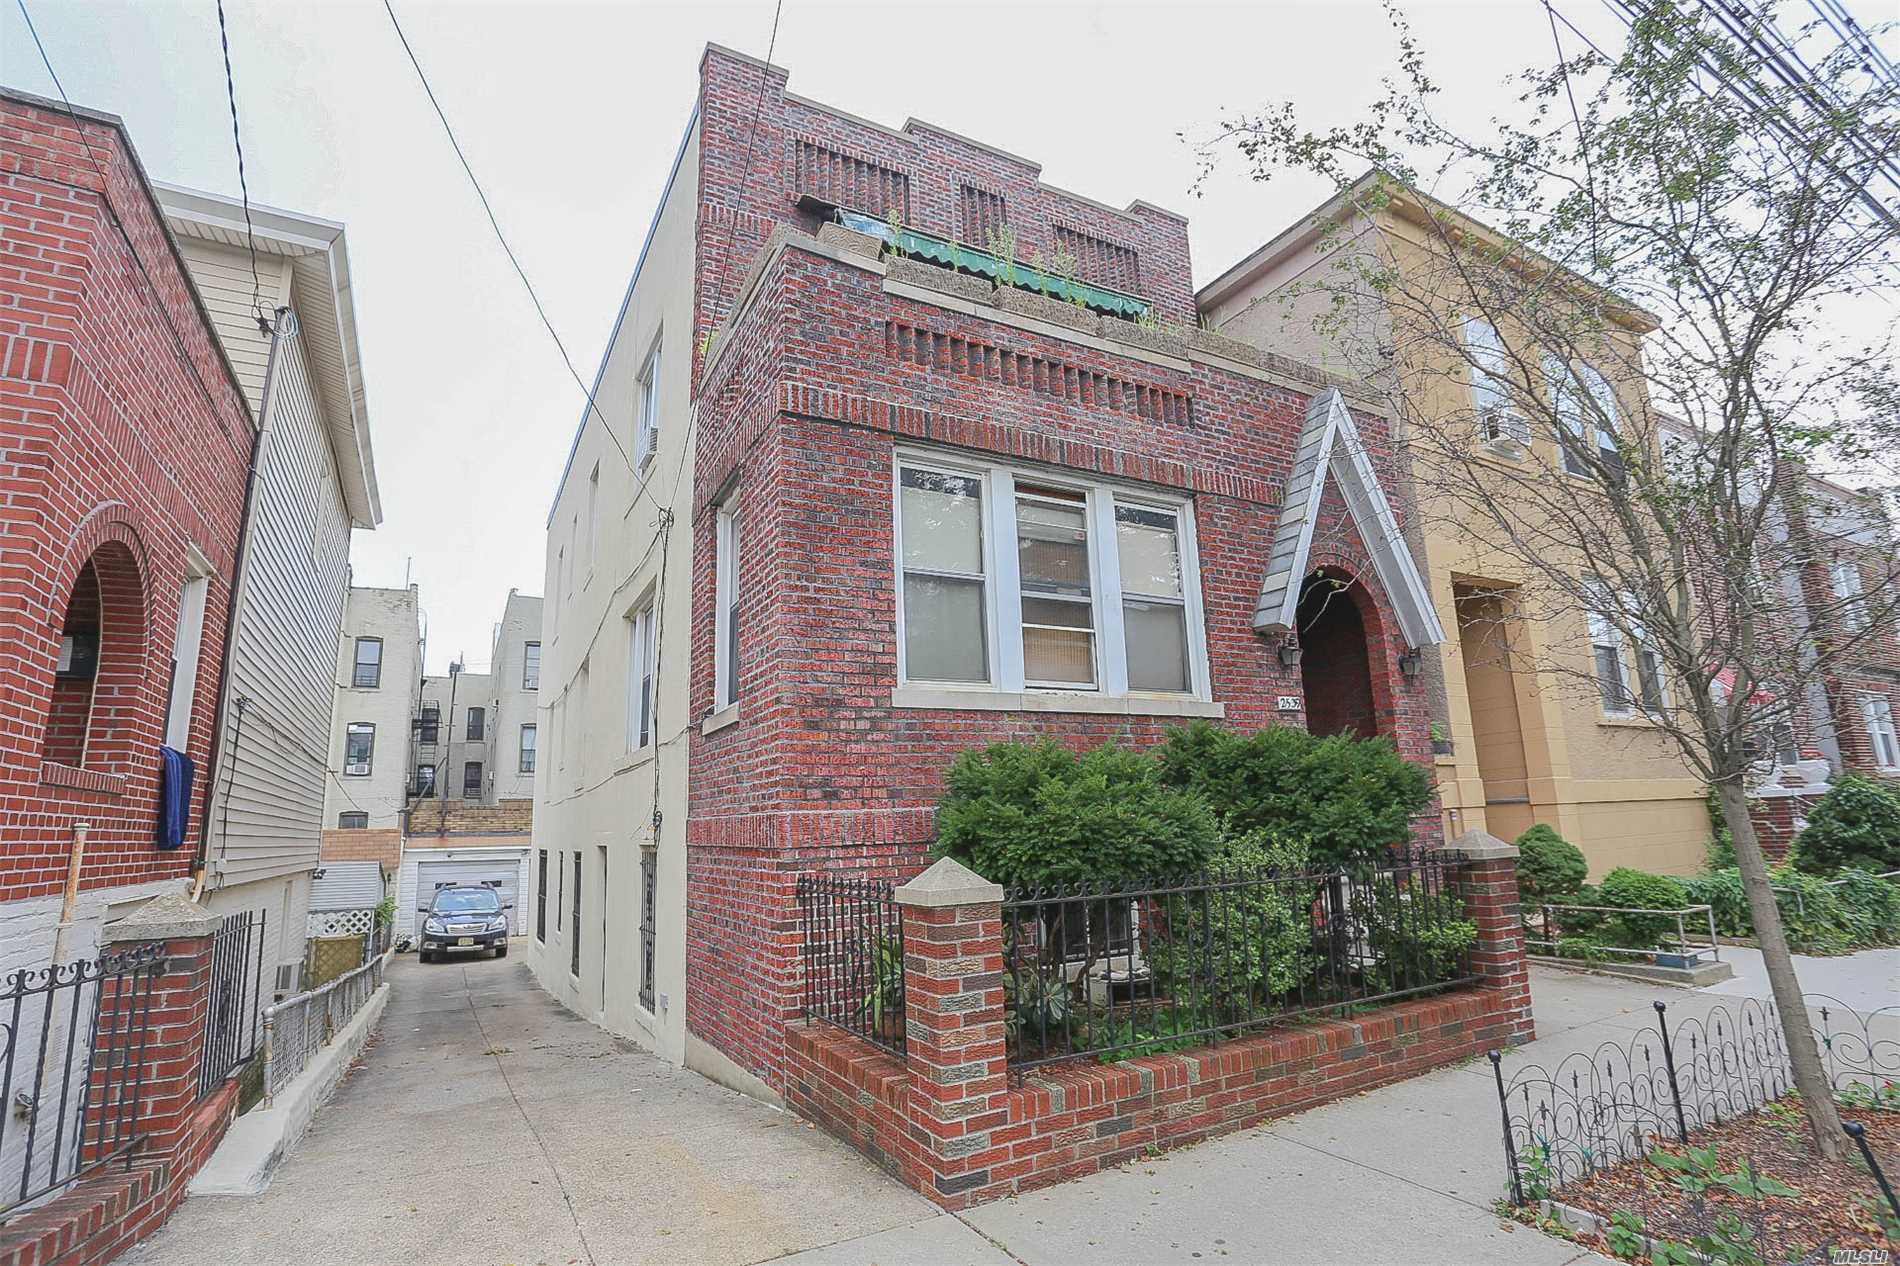 Great Income Opportunity In Astoria, Queens. Vacant 3 Fam Brick W/ Private Driveway, 3 Garages, Ideal Layouts. Bldg Size: 21 X 56, Lot Size: 30 X 96. Located Just 3 Blocks From Steinway, 2 Blocks From 30th Ave, 5 Blocks From Newly Renovated Astoria Heights Playground. Trains Easily Accessible Via N & W At Astoria Blvd-Hoyt Ave Or M & R At 46th St. 3rd Flr Feats 2 Bedrms, 1 Bth, Huge Eat In Kitchen, Spacious Living Rm, Open Front Porch. 2nd Flr Feats 2 Bedrms, 1 Bath, Huge Eat In Kitchen....